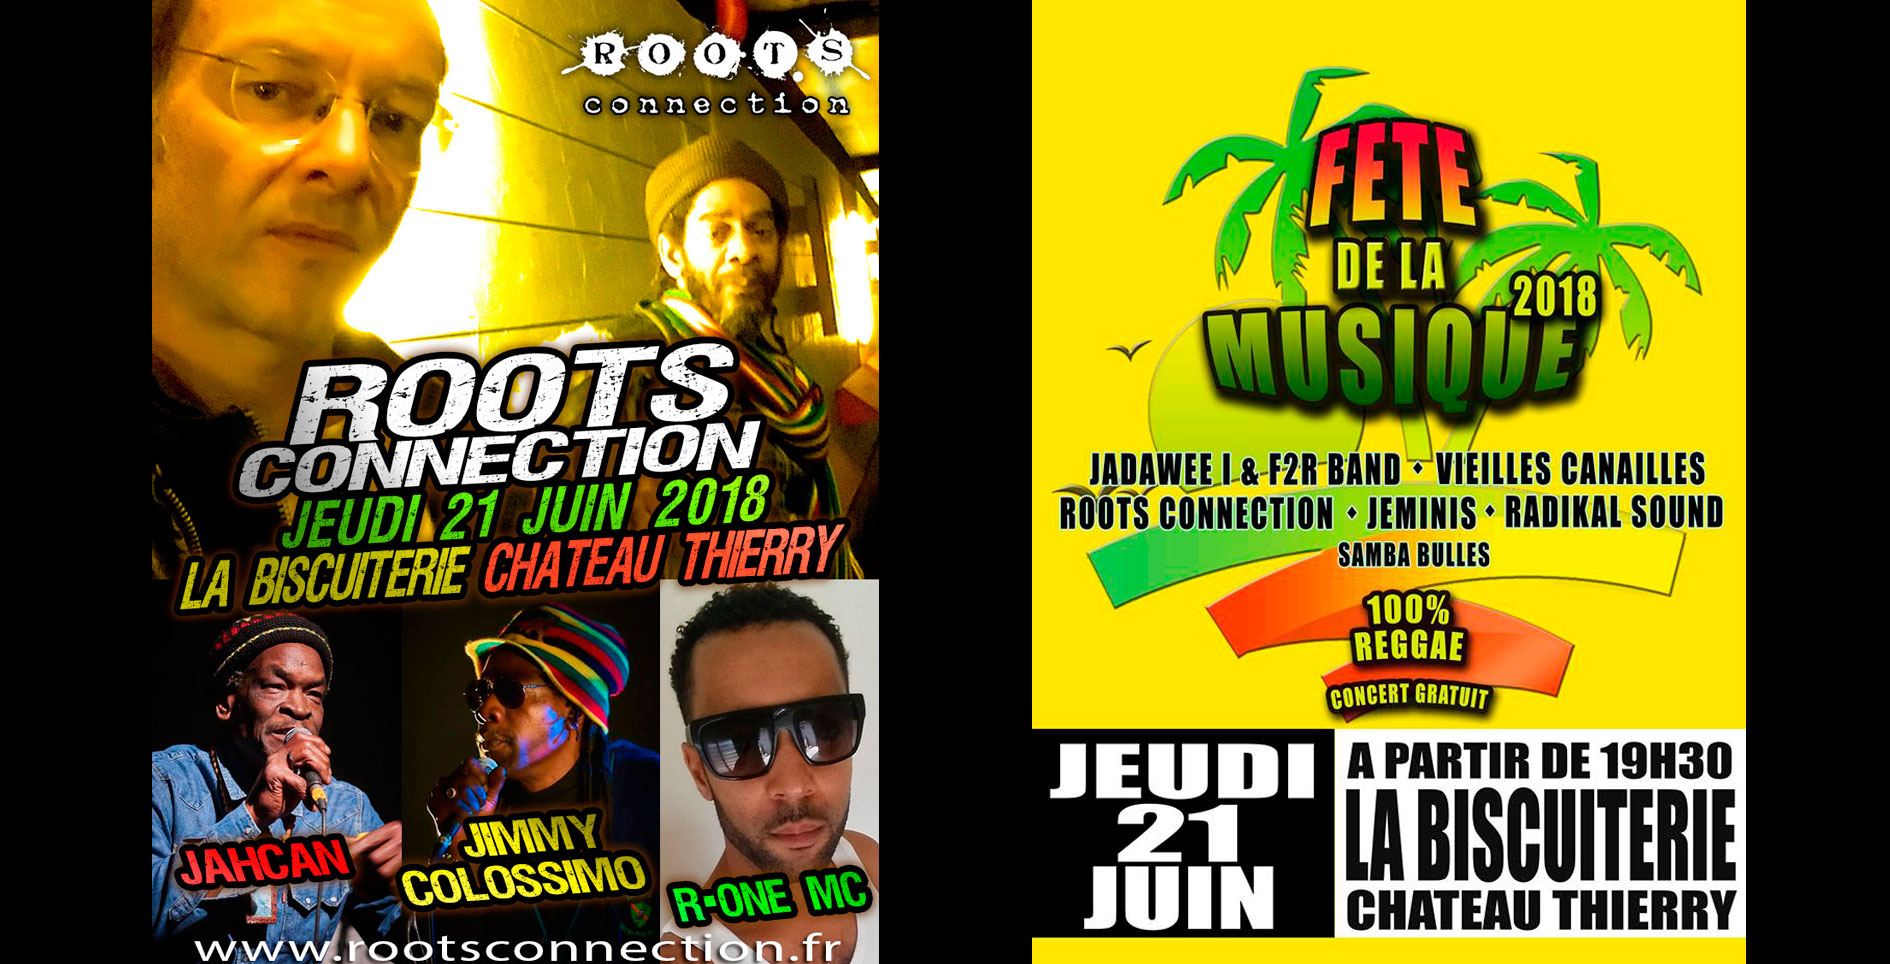 Roots Connection live La Biscuiterie - 21 juin CHATEAU-THIERRY